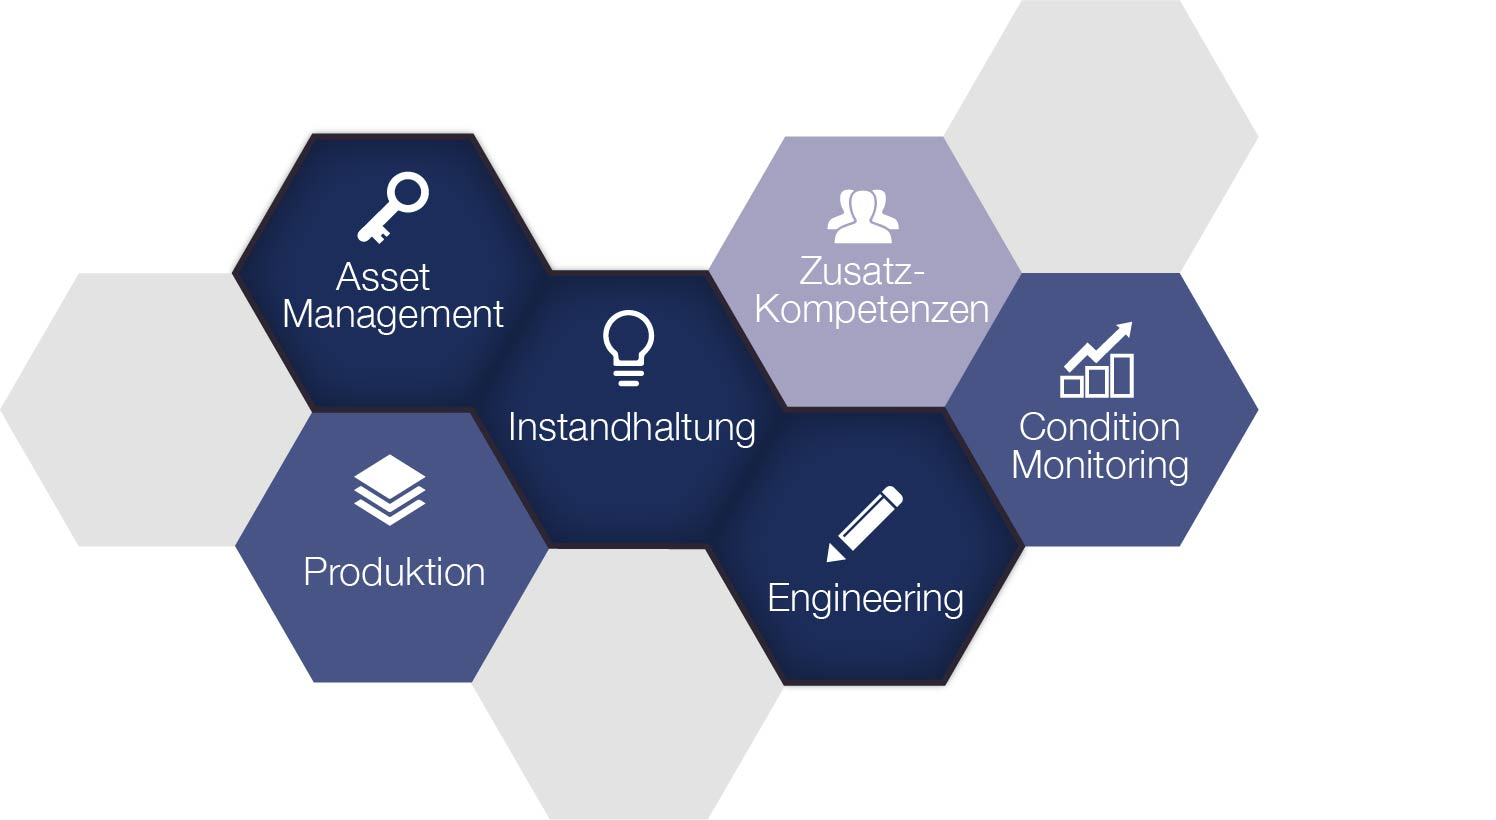 System for Excellence, S4E, dankl, MCP; Waben, Instandhaltung, Asset Management, Produktion, Engineering, Condition Monitoring